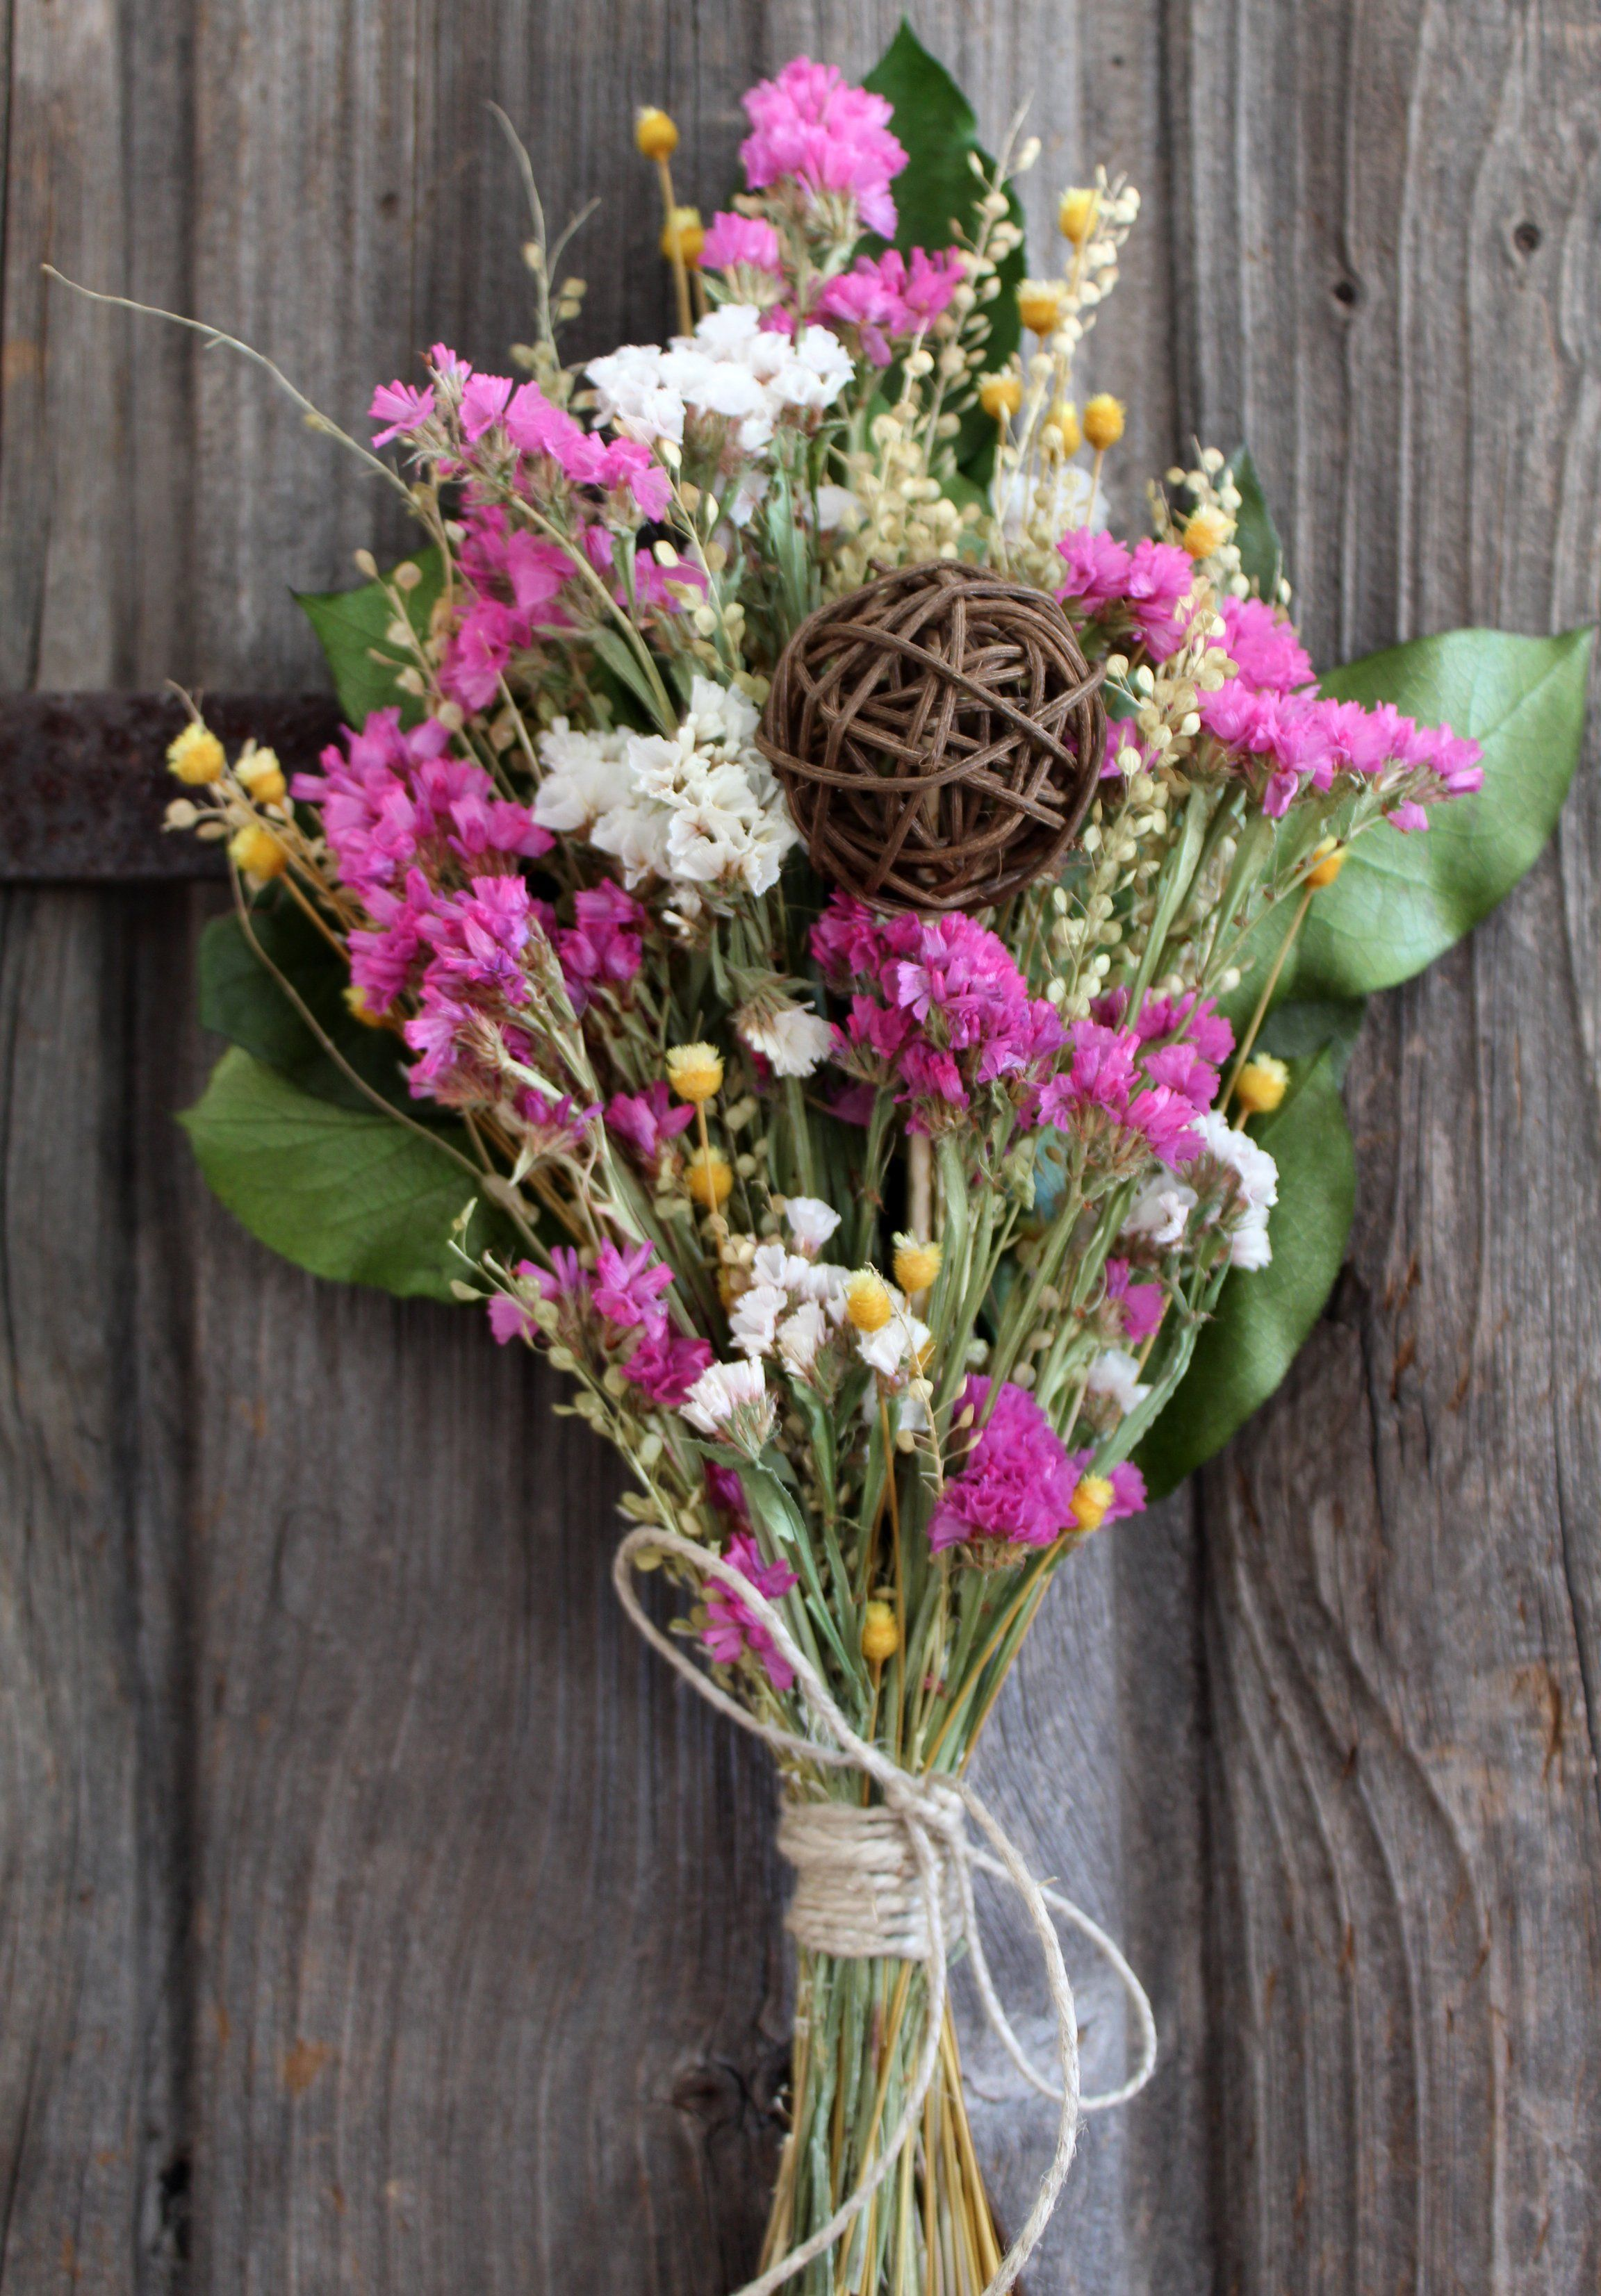 Dried Flower Bouquet Pink Statice Twig Bridal Home Decor For Those